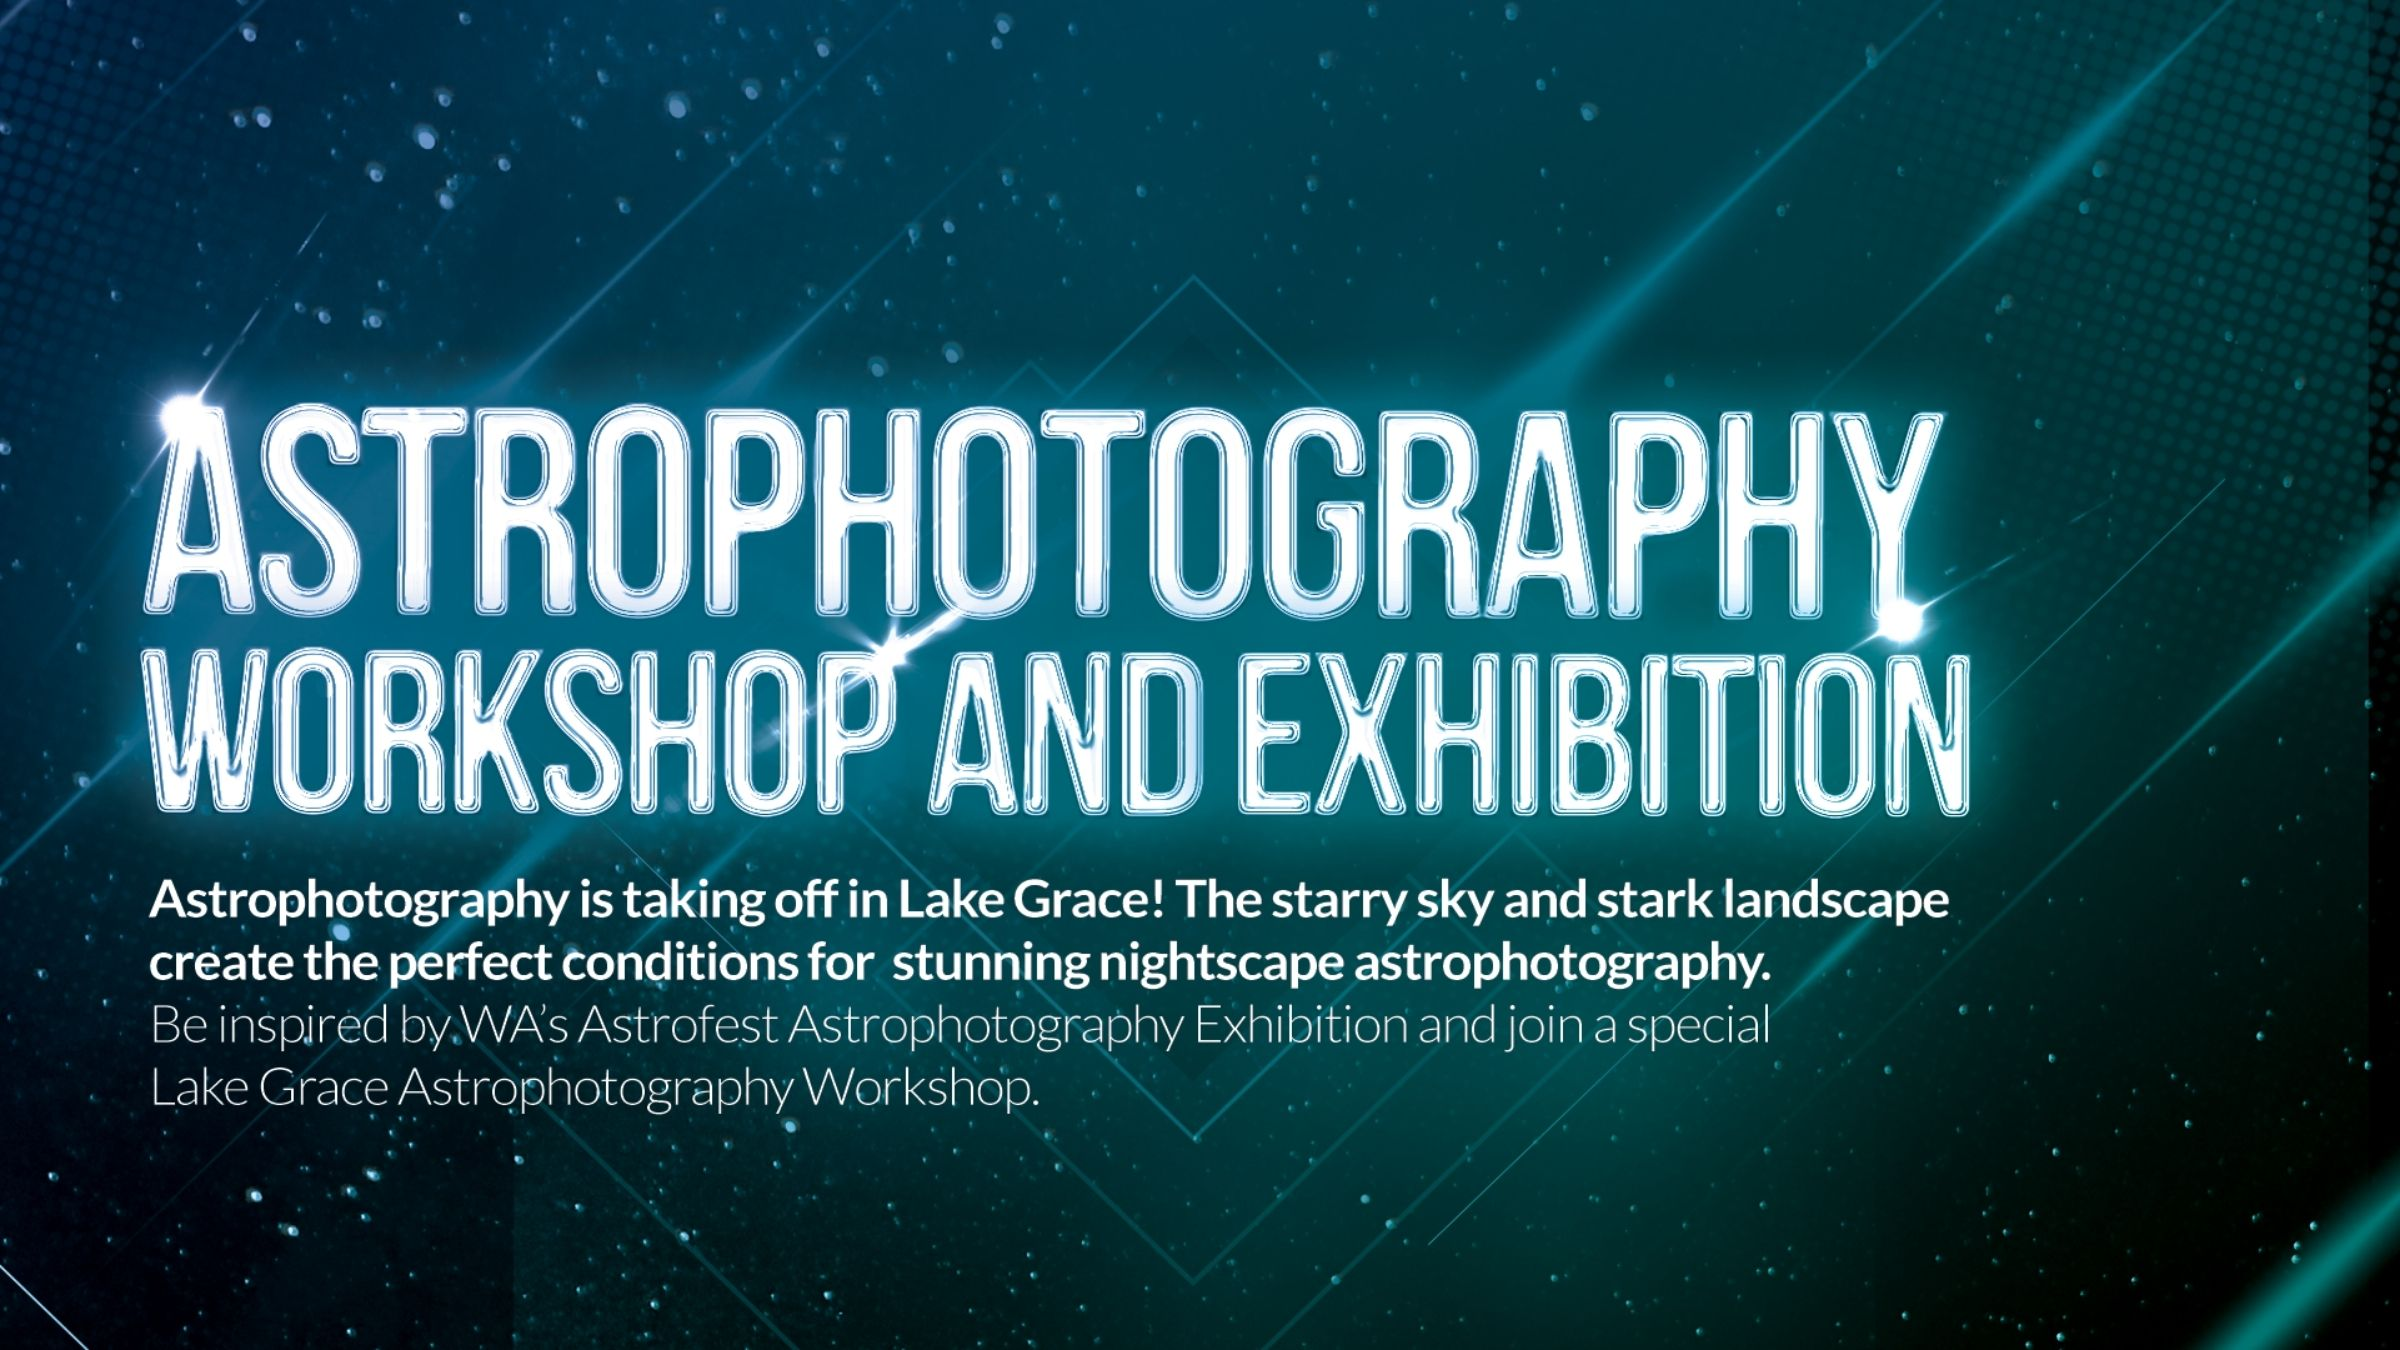 Lake Grace Astrophotography Workshop & Exhibition | 1st May